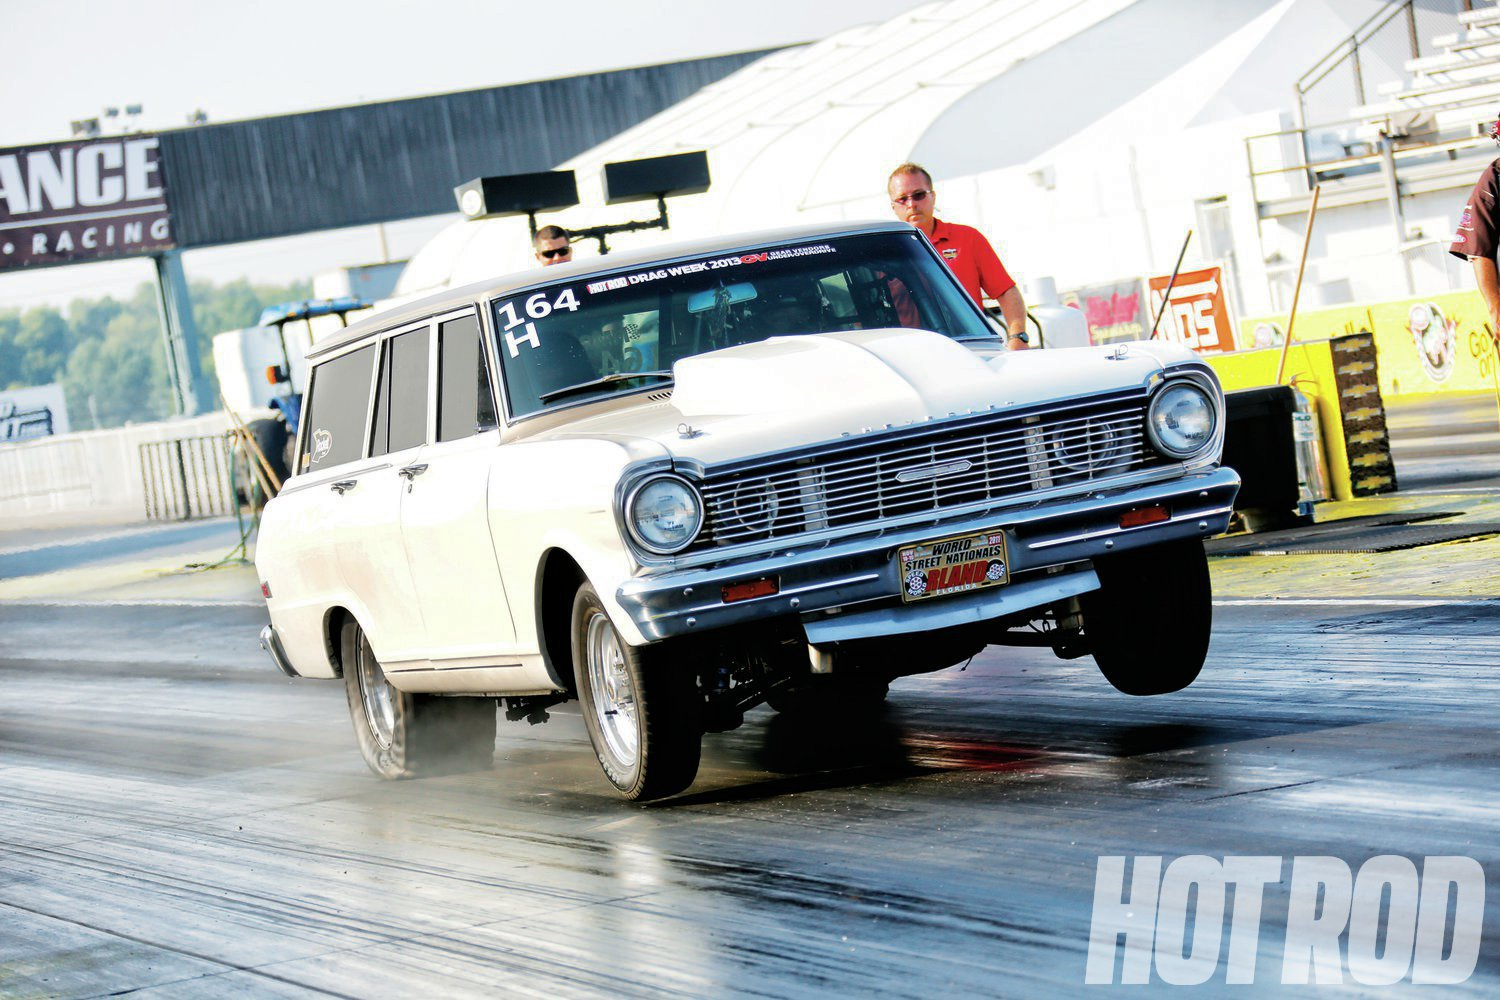 If it weren't for the twin turbos behind the grille, Rick's Nova would be quite the sleeper.